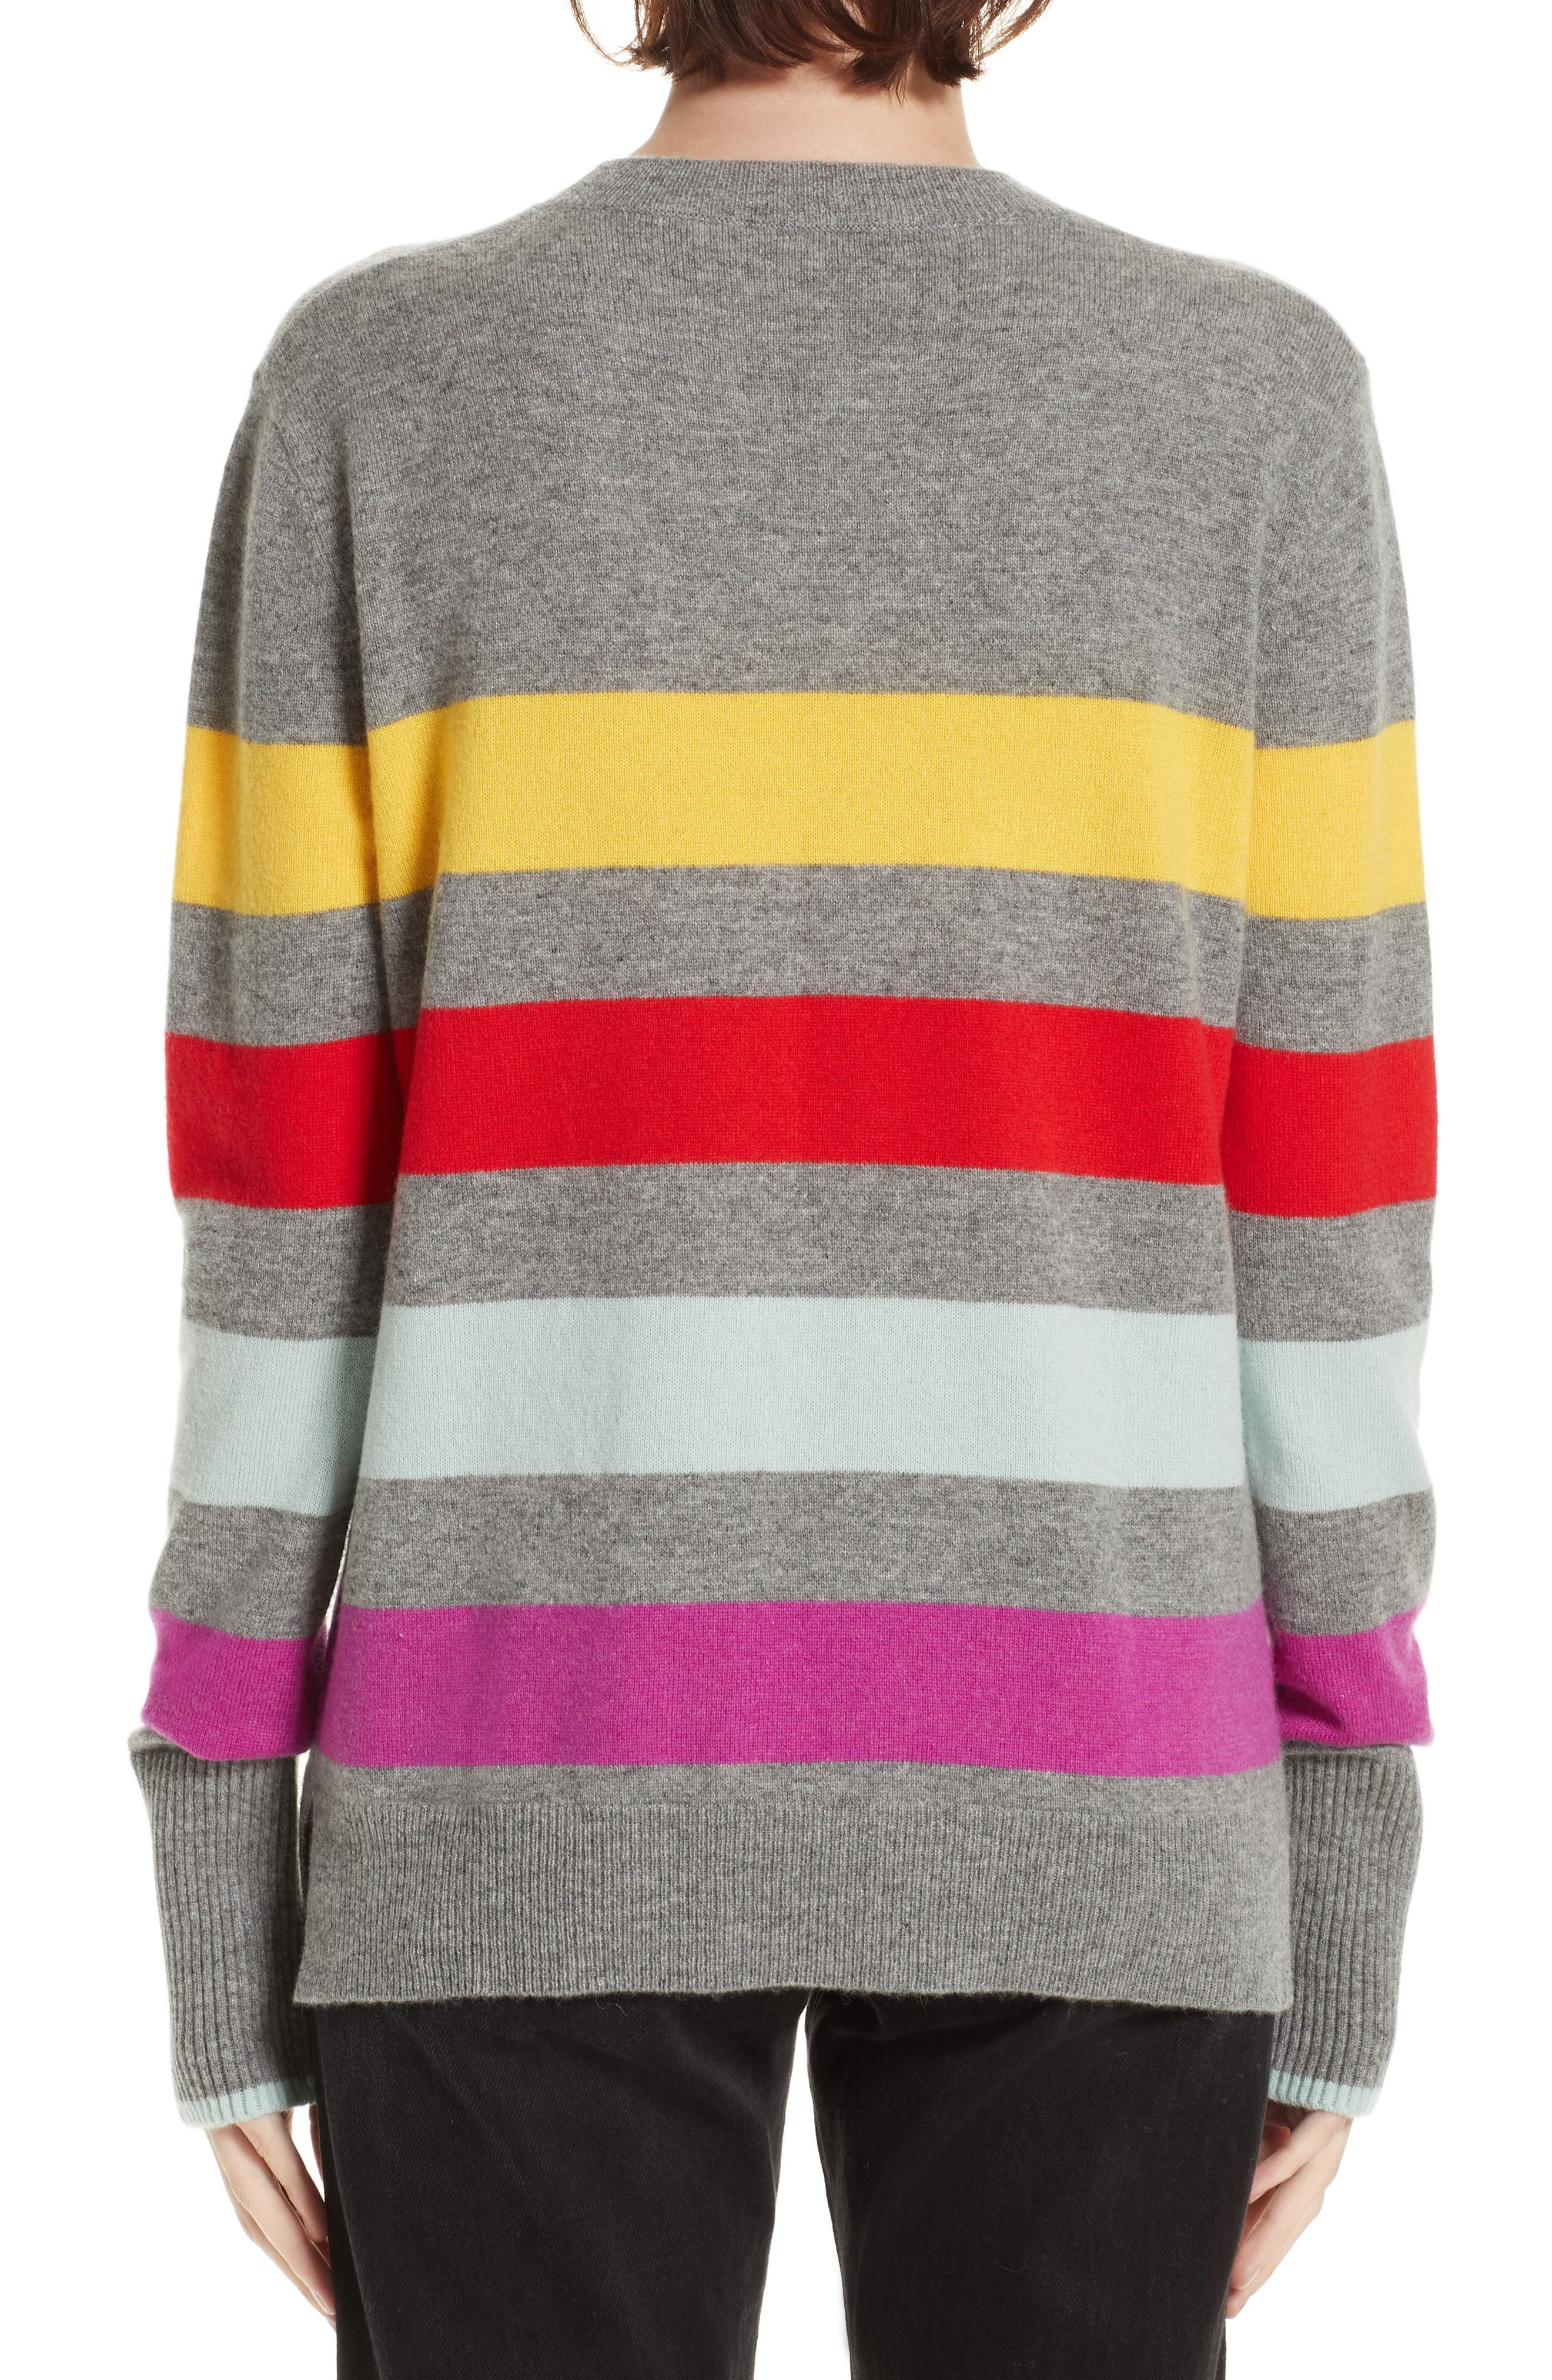 Candy Stripe Sweater,                             Alternate thumbnail 2, color,                             GREY MARLE/ RAINBOW